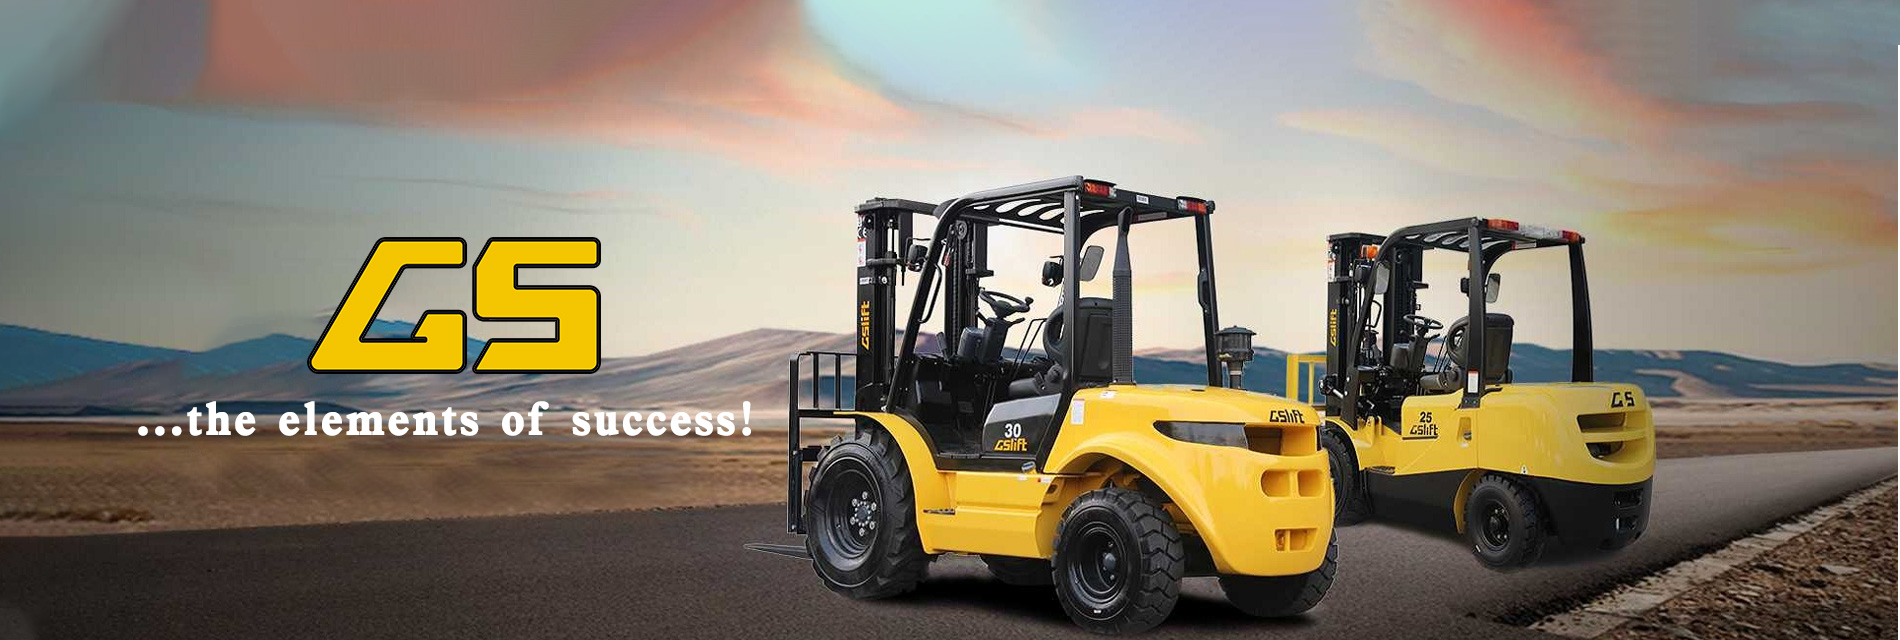 GS is the element of success-www.gs-forklift.com